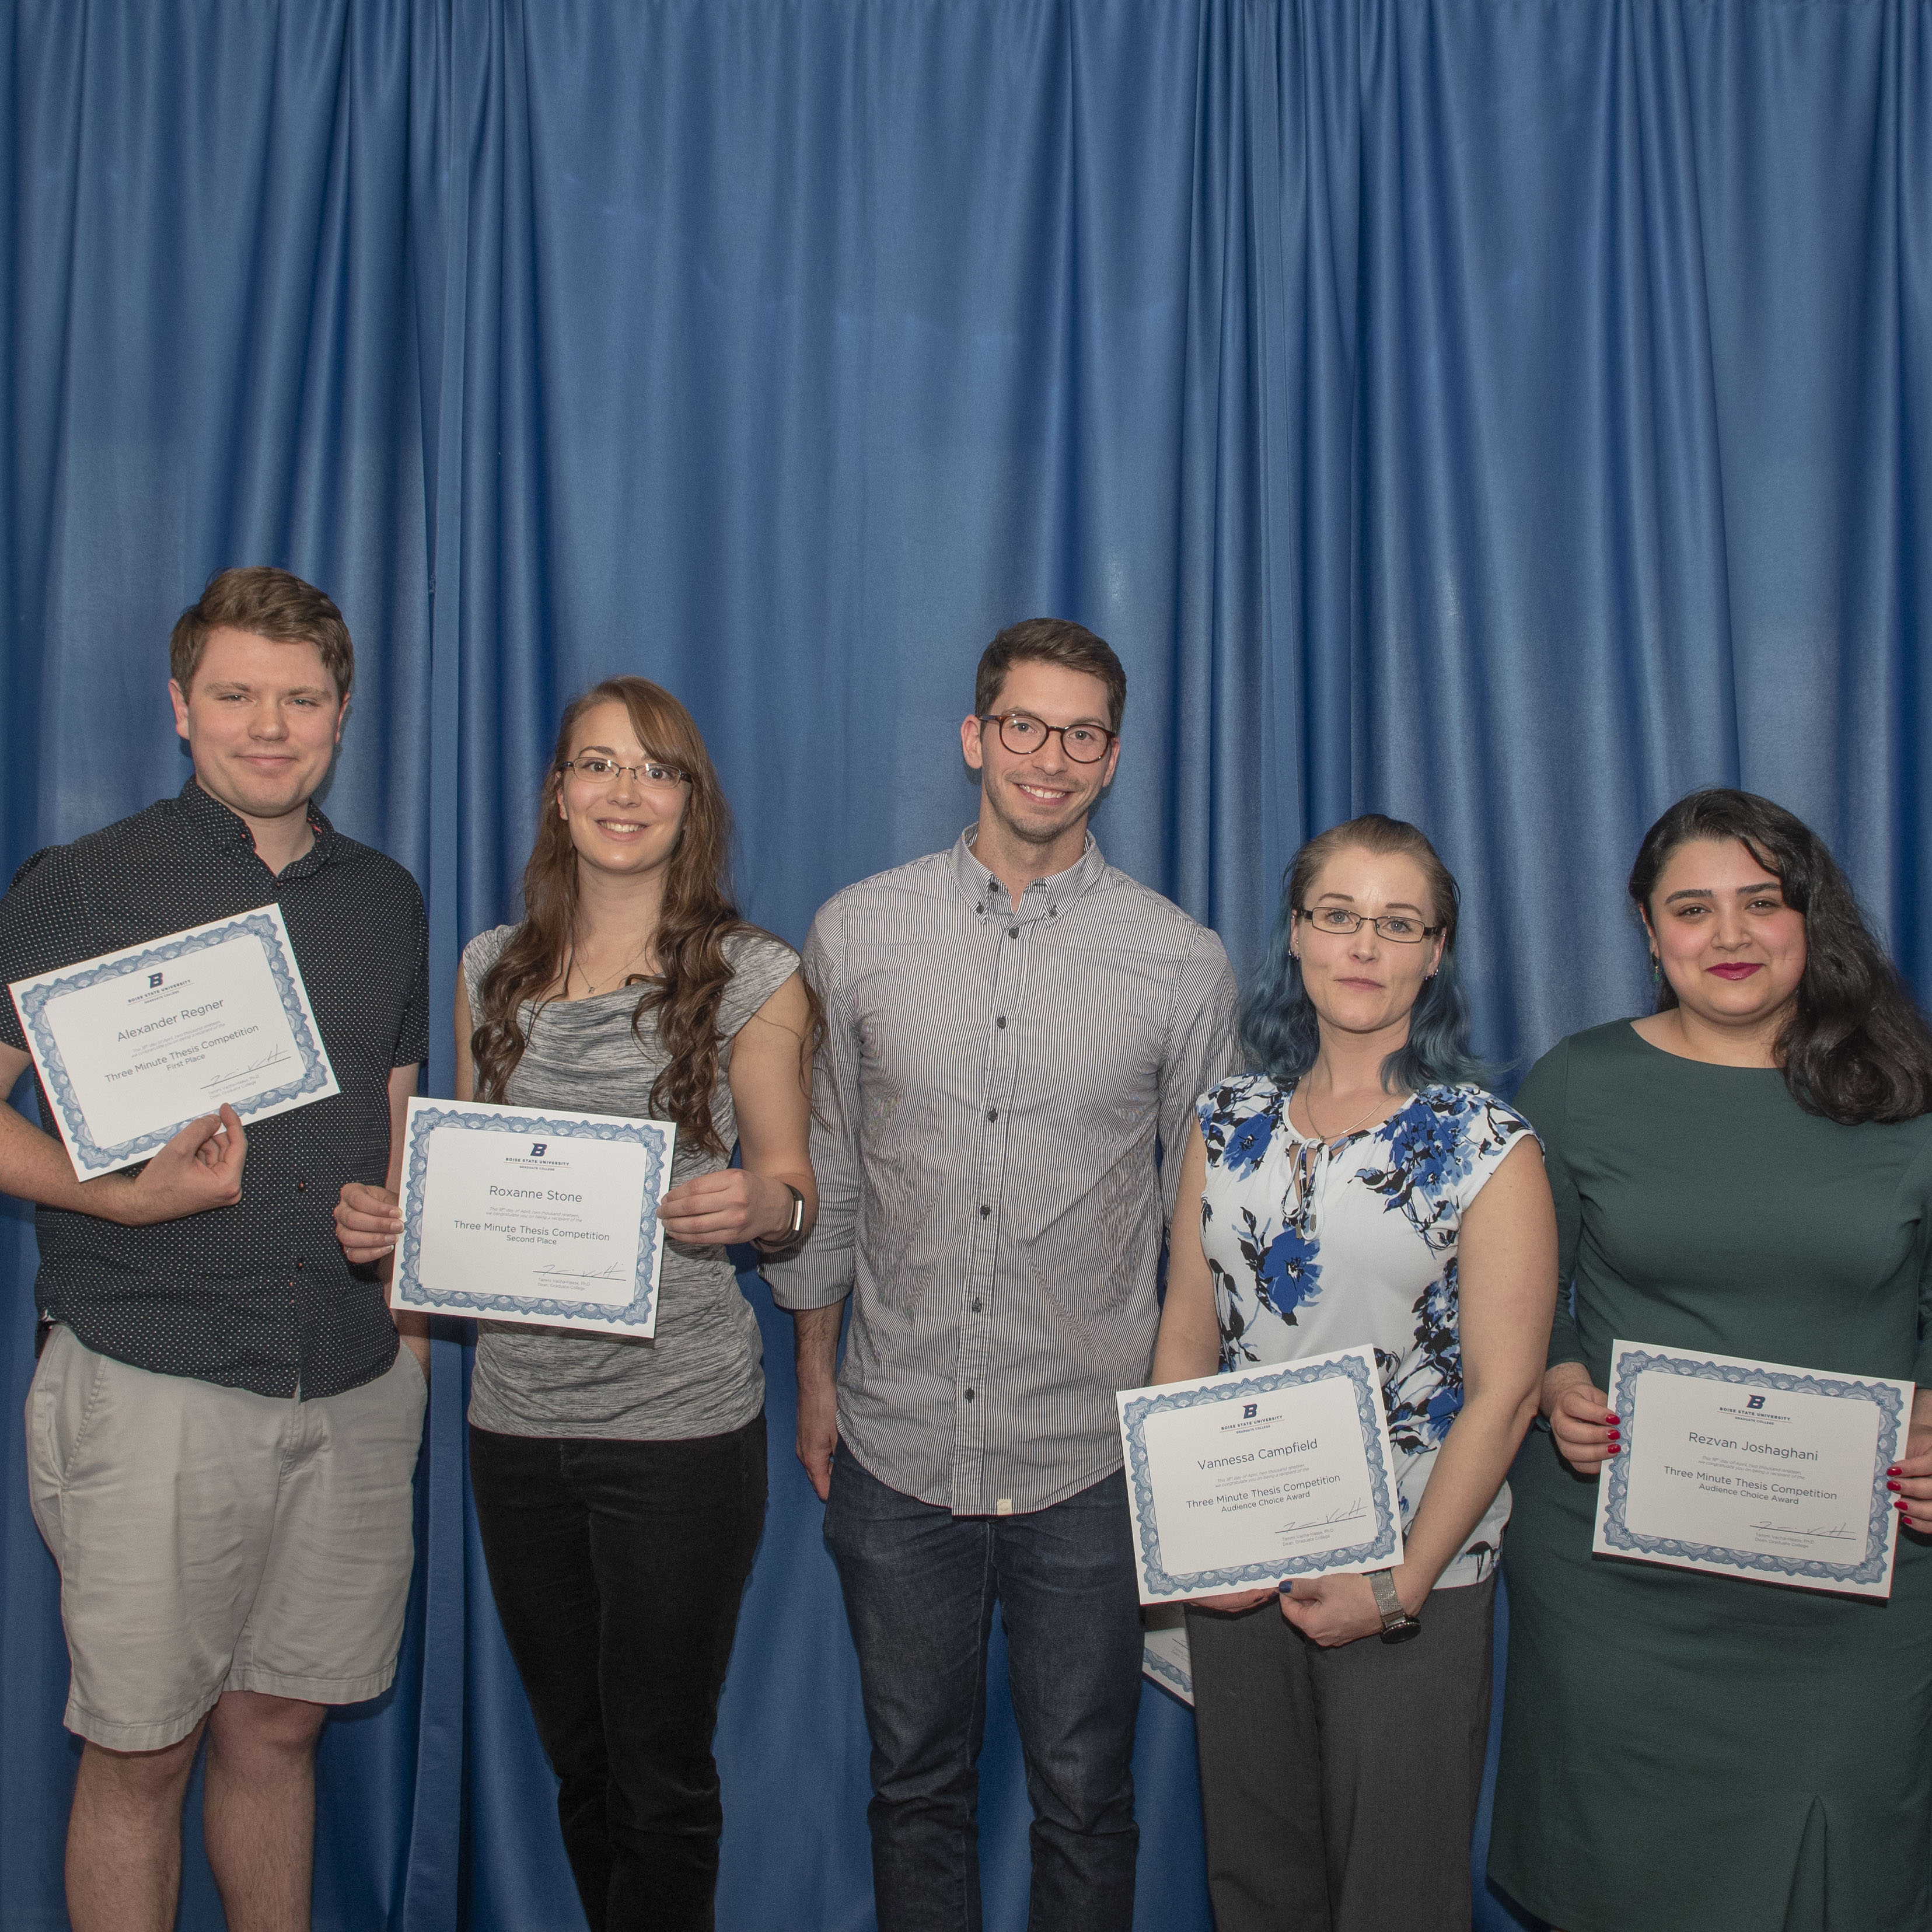 Graduate College Awards Ceremony, five three minute thesis award winners pictured